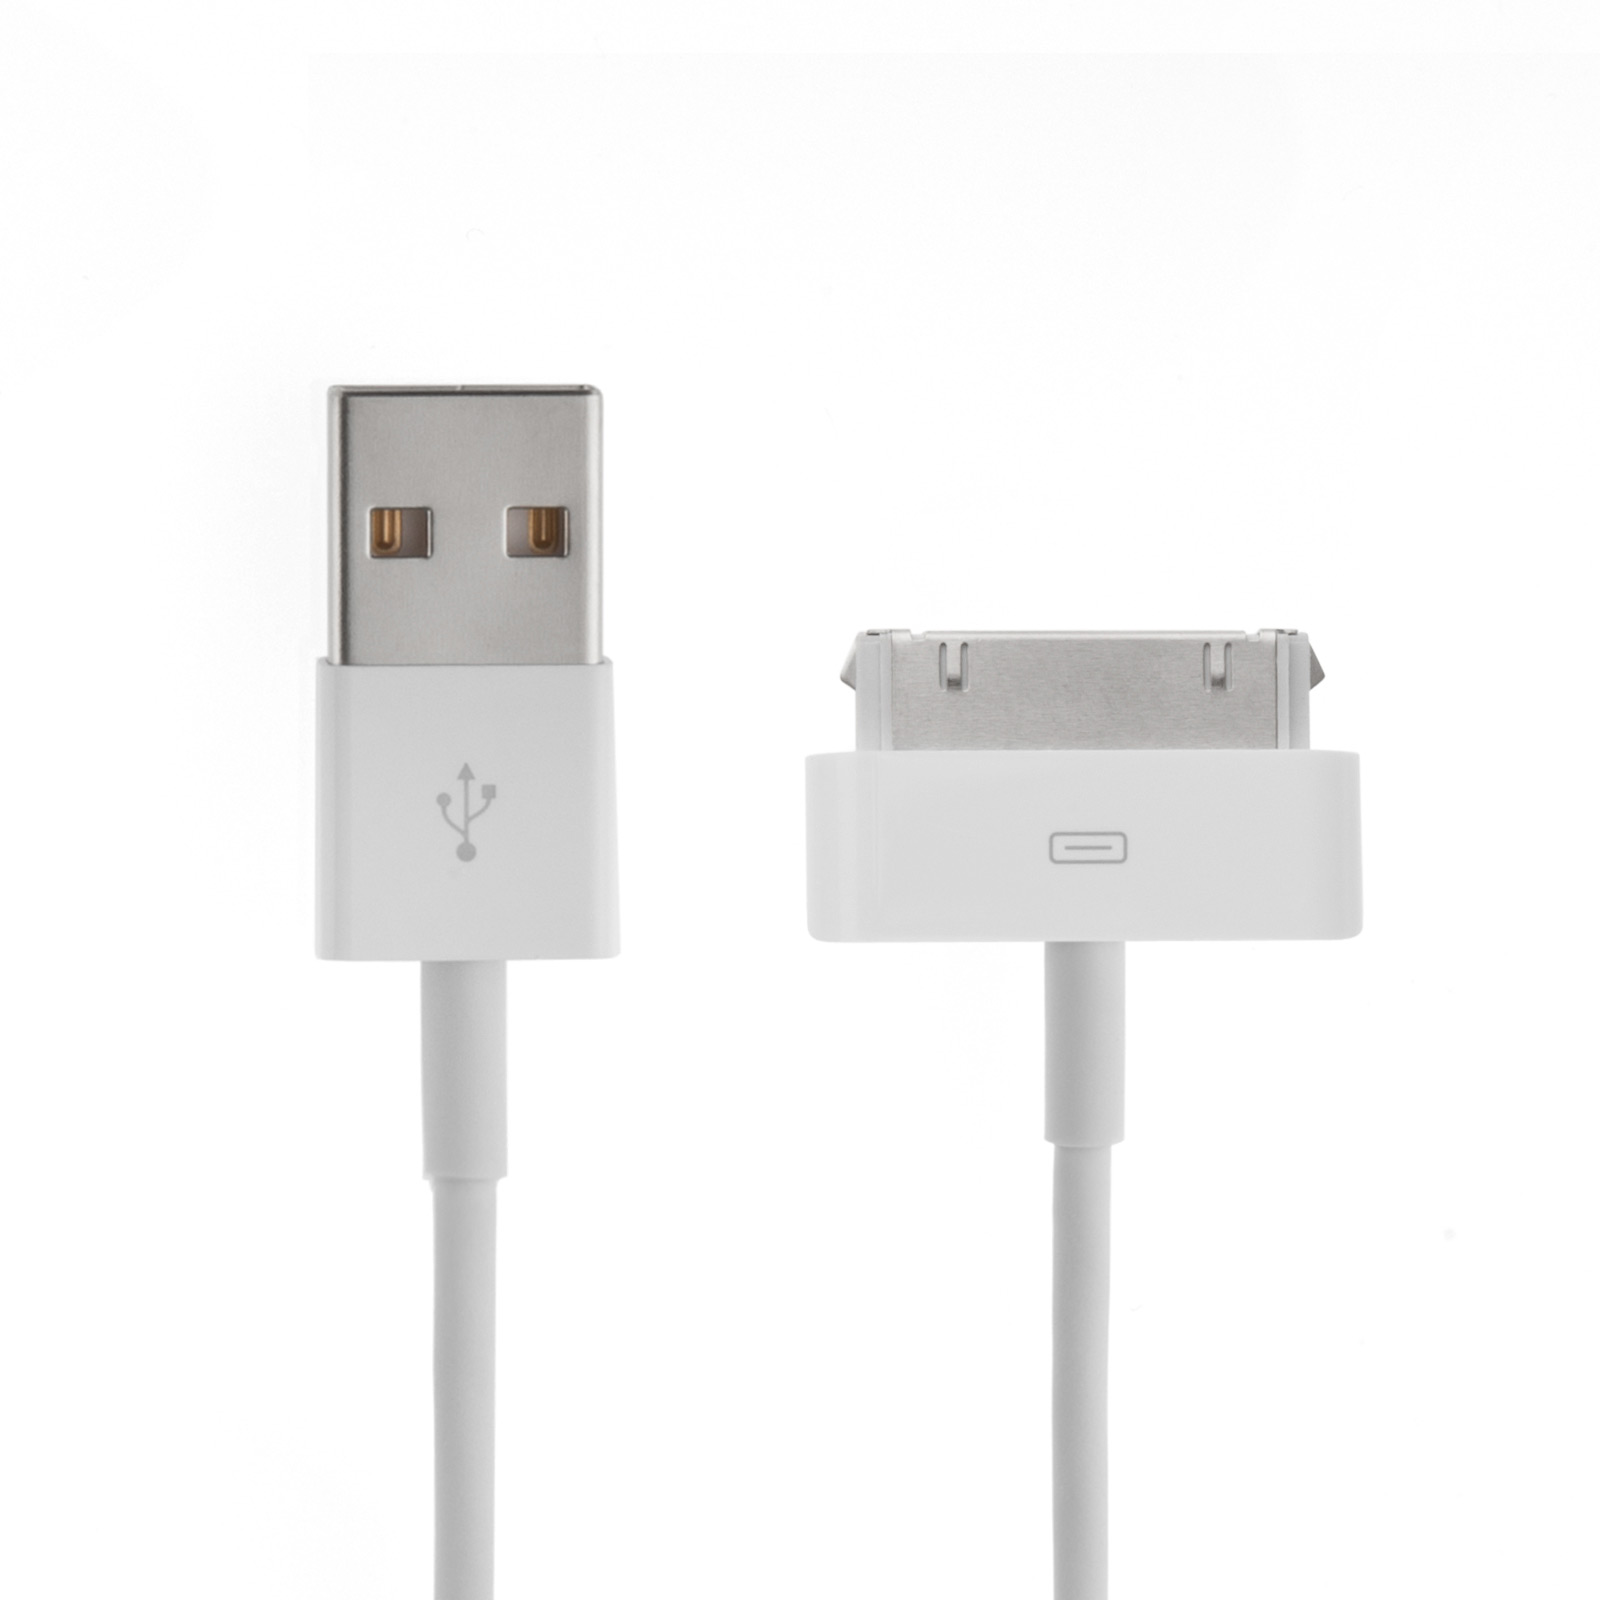 Official Apple 30-pin to USB Cable for iPhone 3G/3Gs, iPhone 4/4S